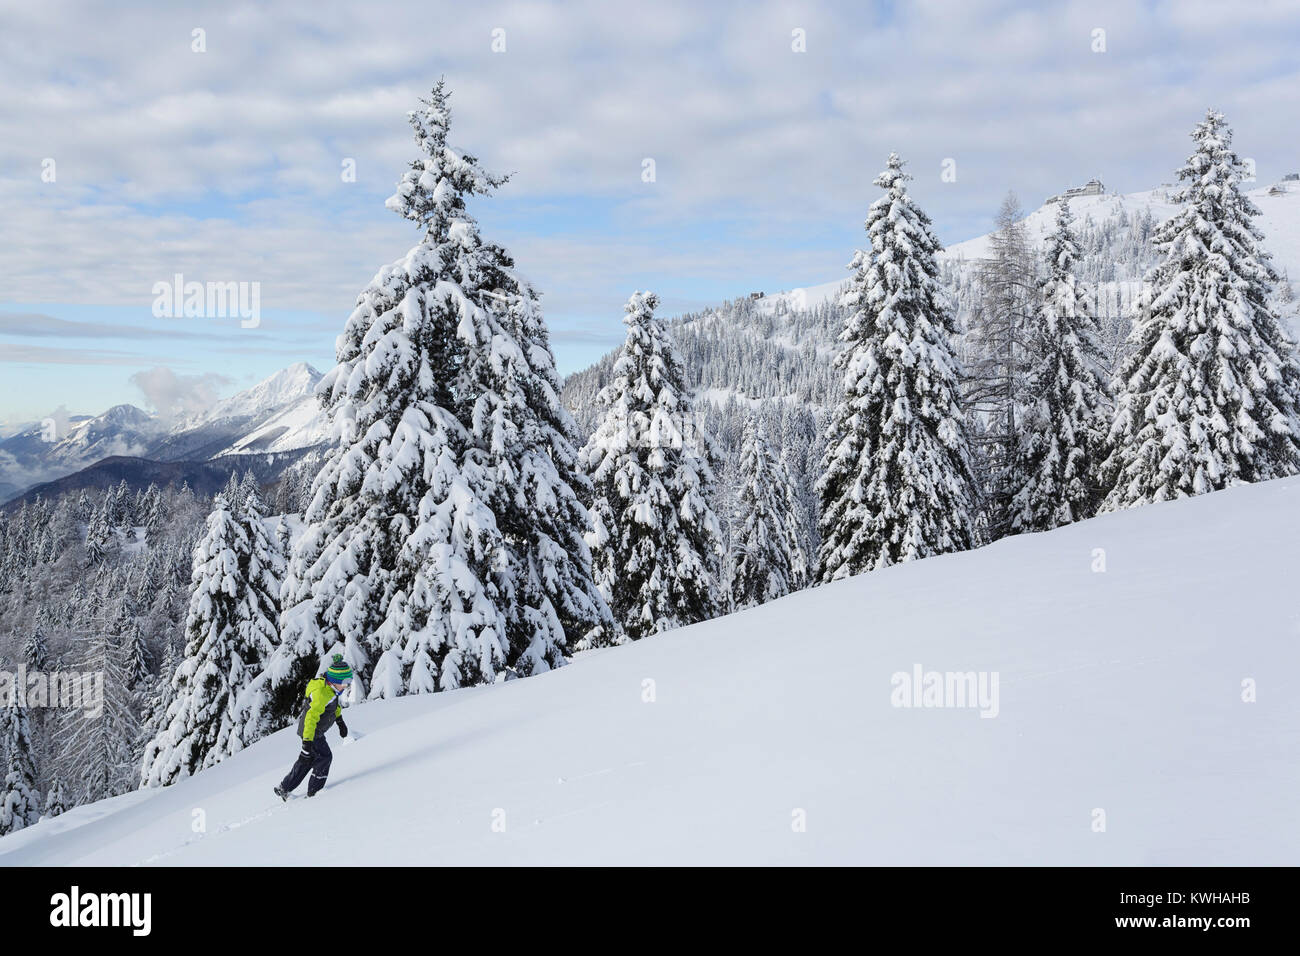 Young boy in yellow winter jacket hiking uphill in fresh snow among frozen spruces, Krvavec, Slovenia. - Stock Image